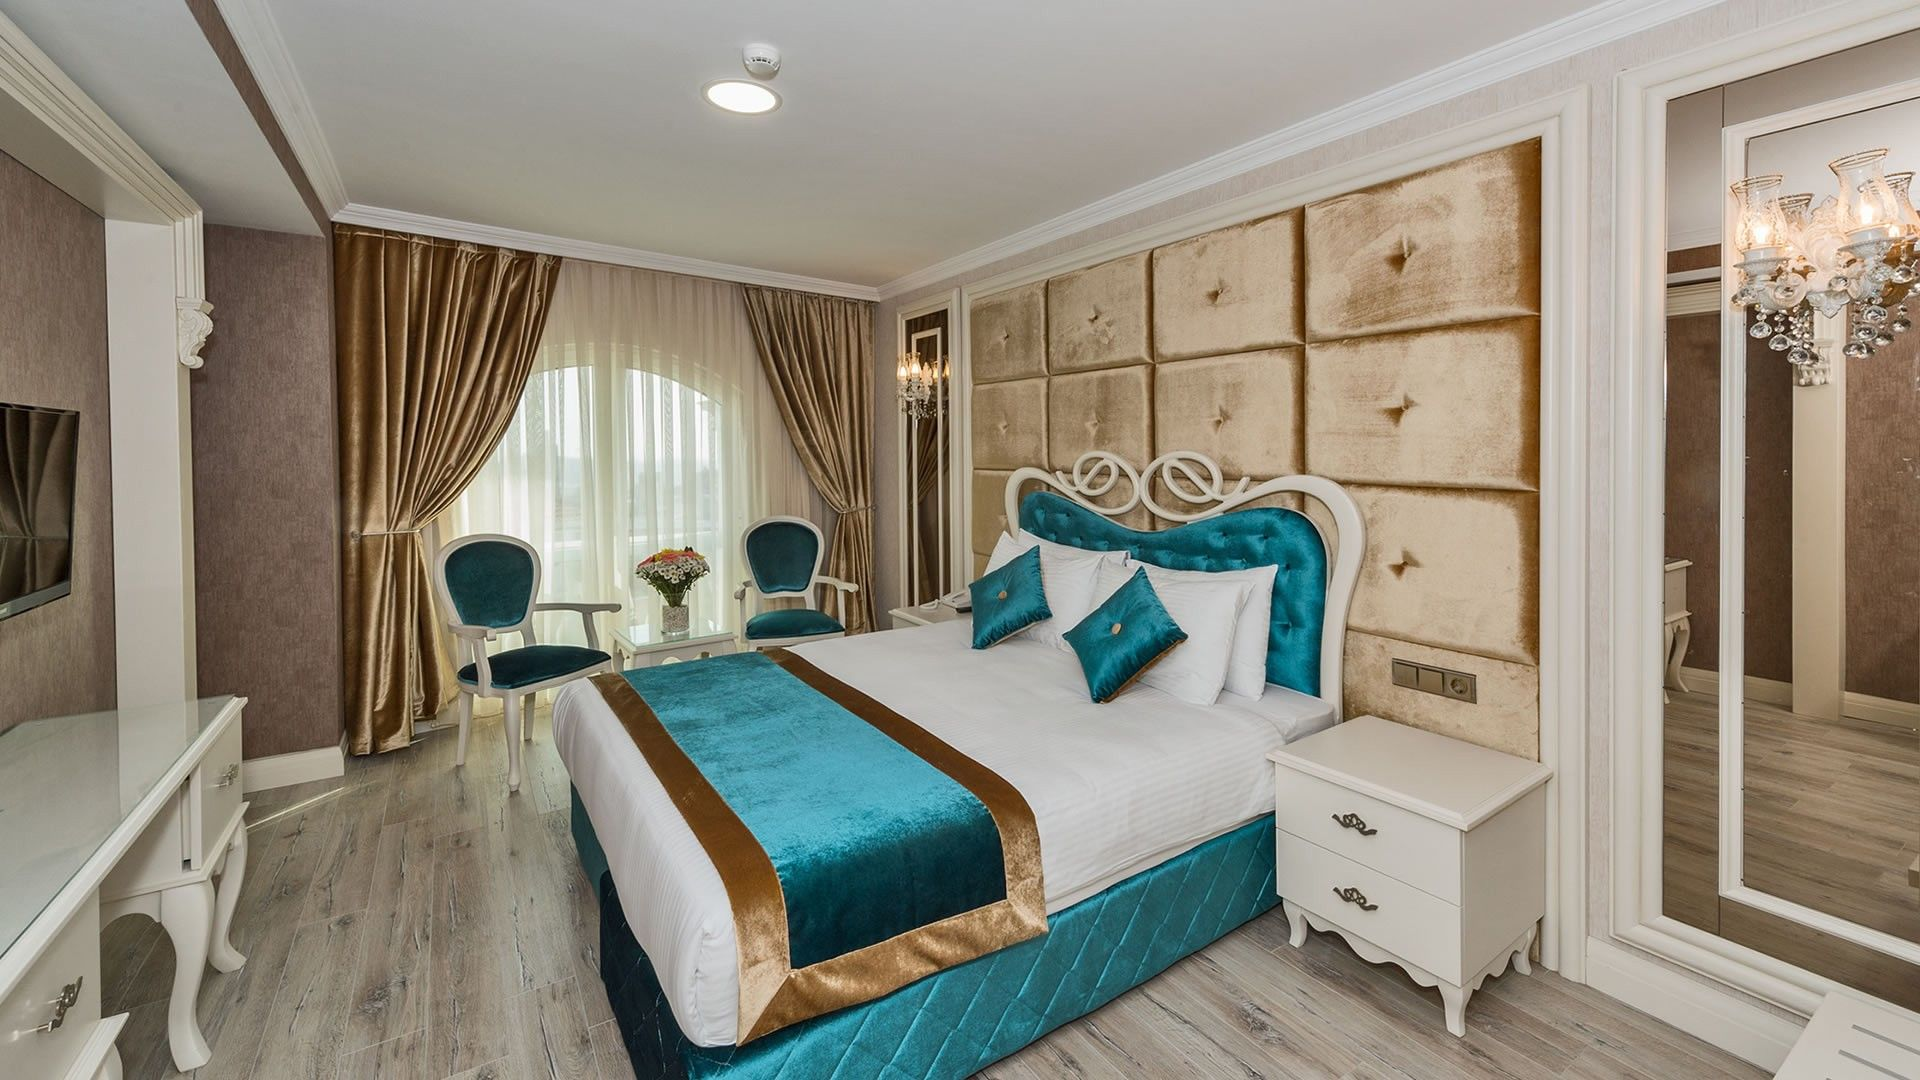 Marnas-hotels-istanbul-rooms-5